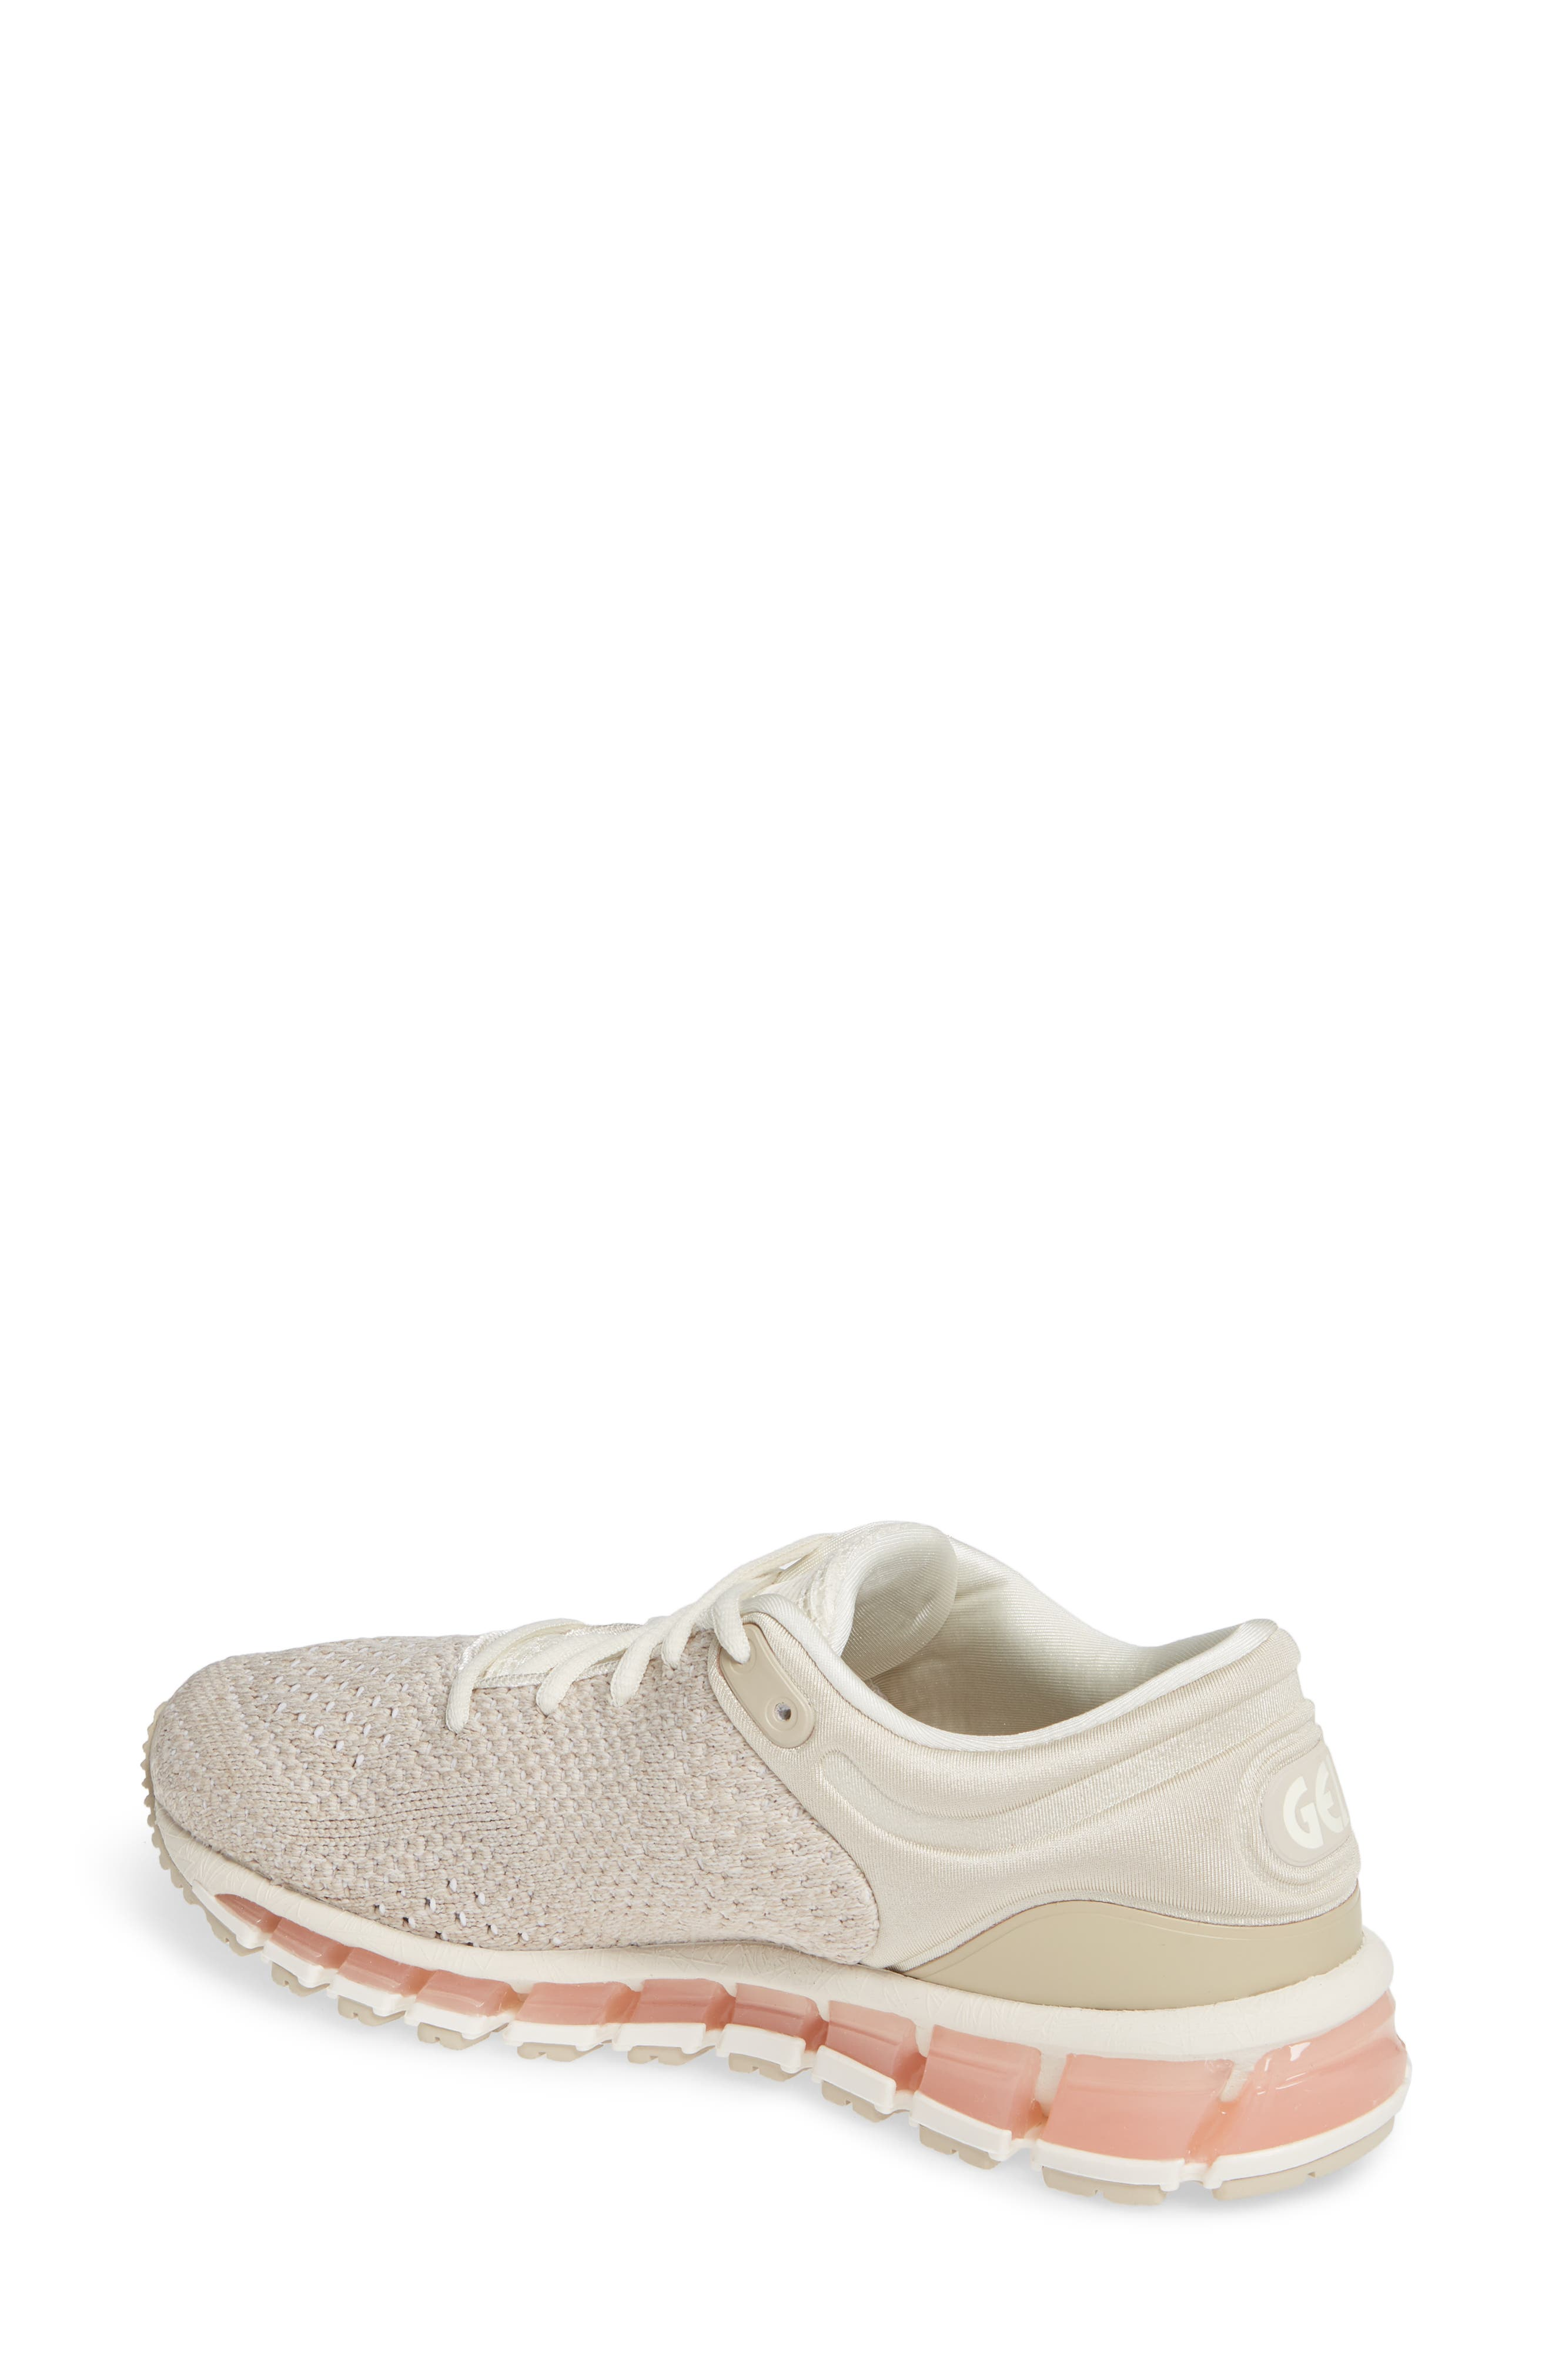 ASICS<SUP>®</SUP>,                             GEL-Quantum 360 Running Shoe,                             Alternate thumbnail 2, color,                             BIRCH/ FEATHER GREY